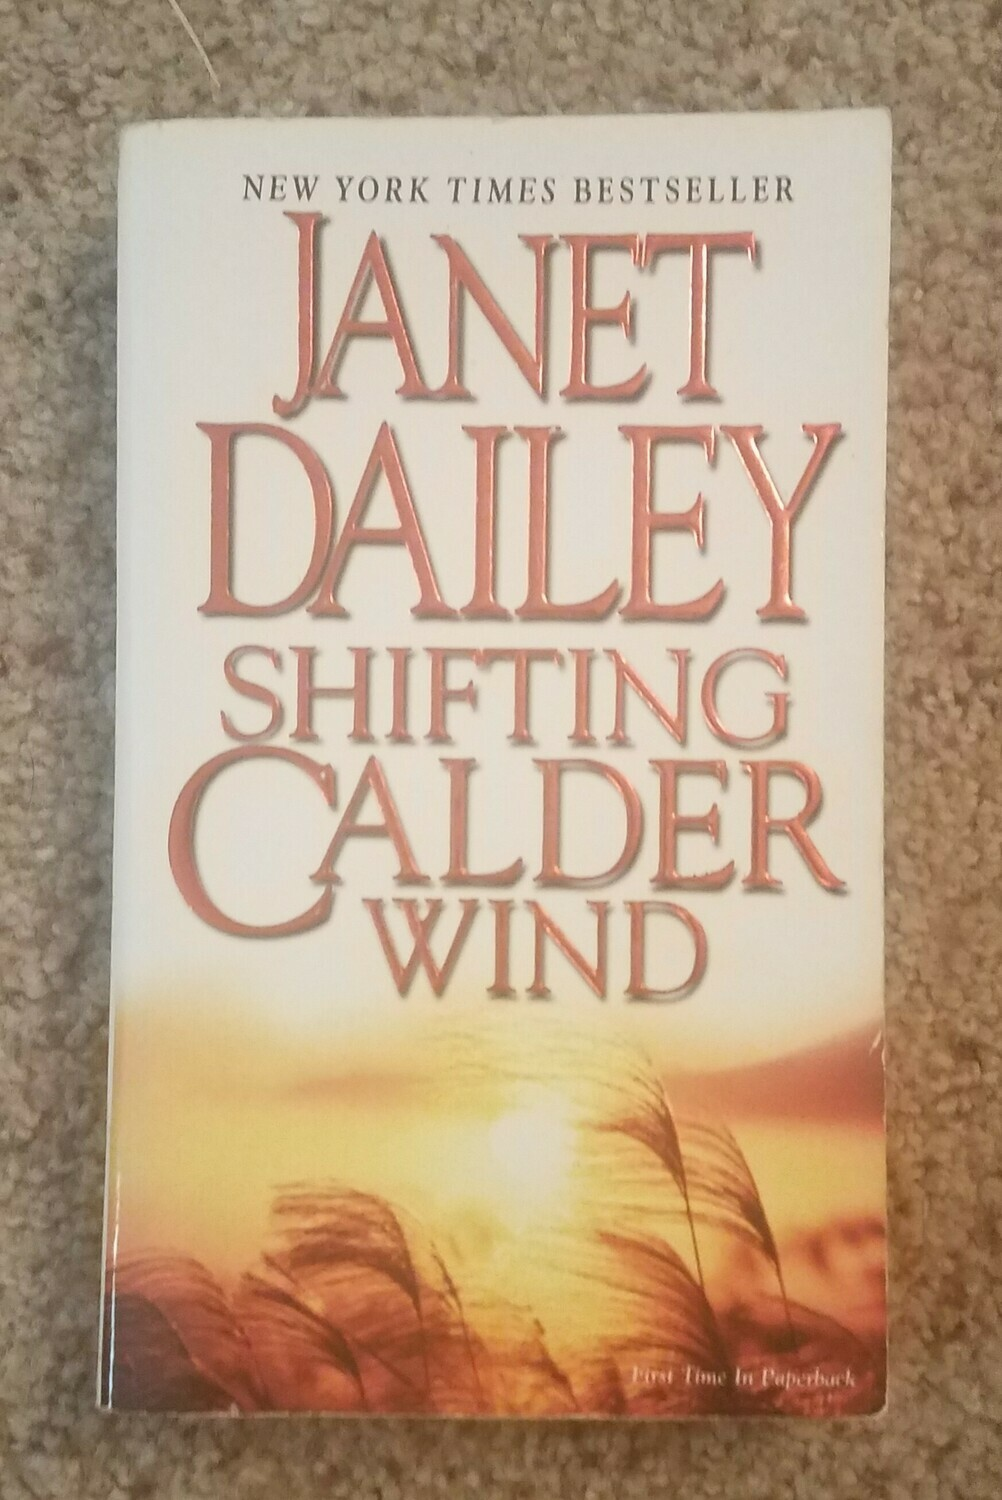 Shifting Calder Wind by Janet Dailey